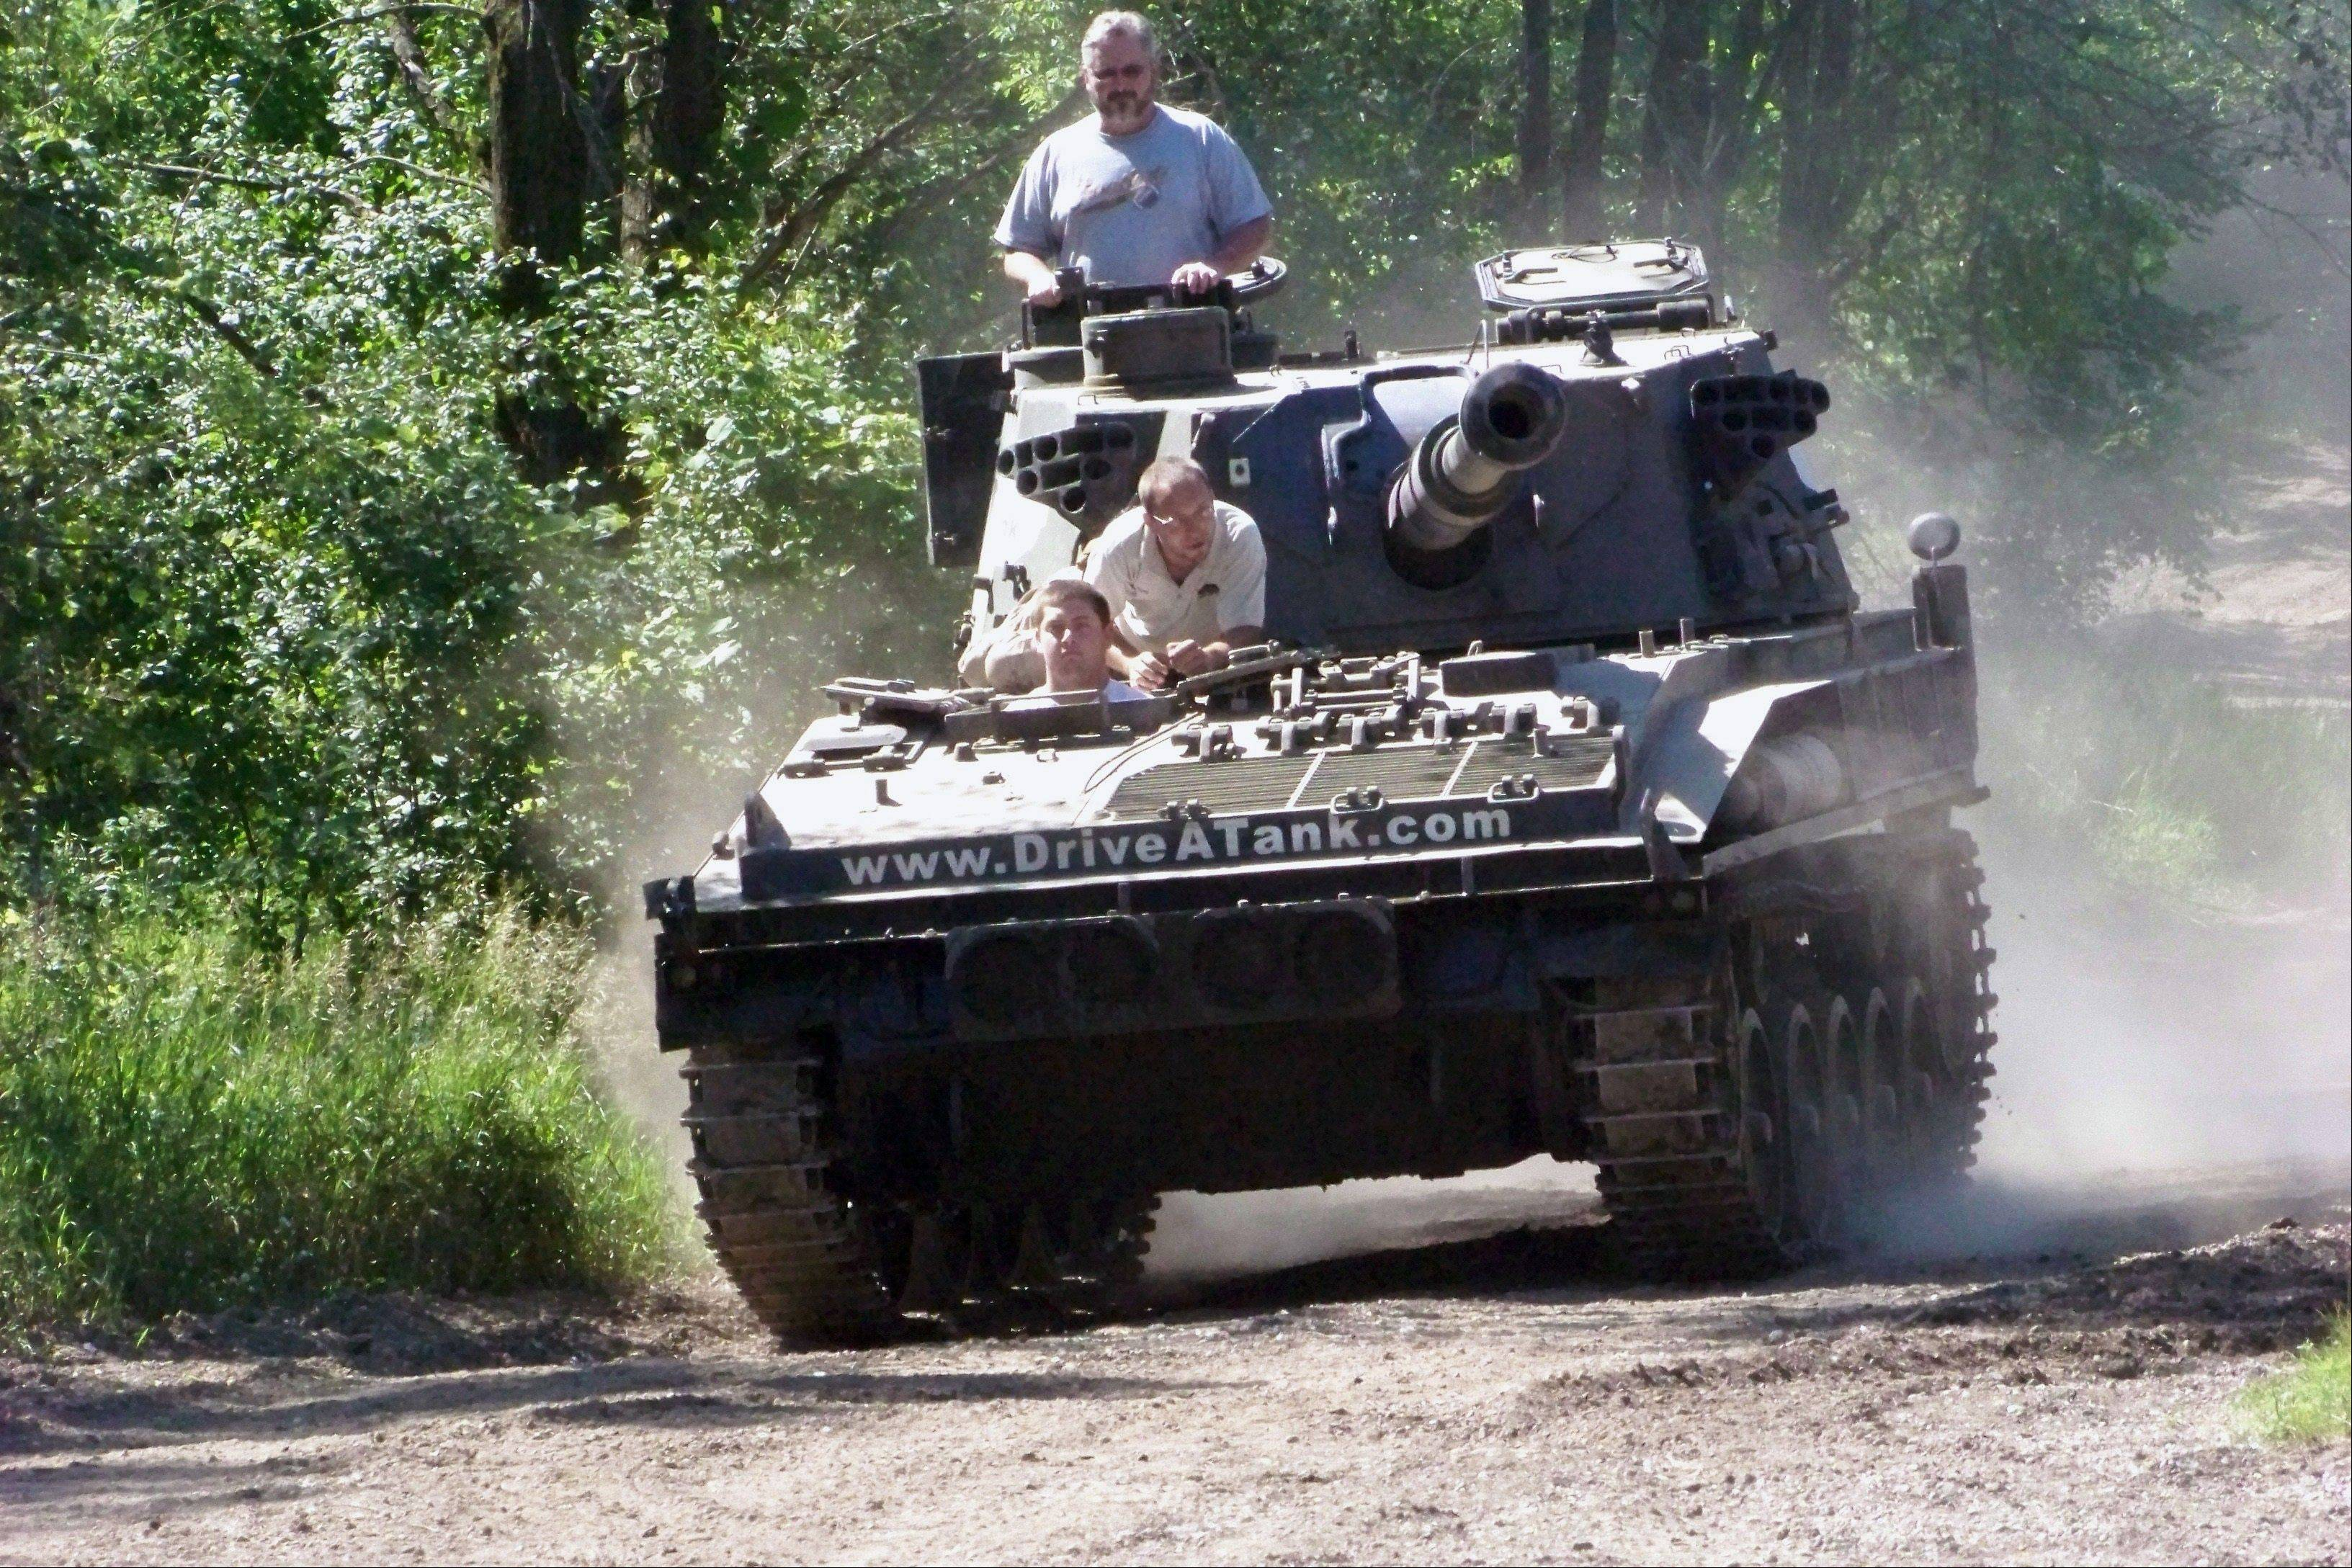 Nick Walker of Amboy, Ind., drives a tank in Kasota, Minn., while his father Brad Walker looks out from the turret and Drive-A-Tank owner Tony Borglum sits behind him.